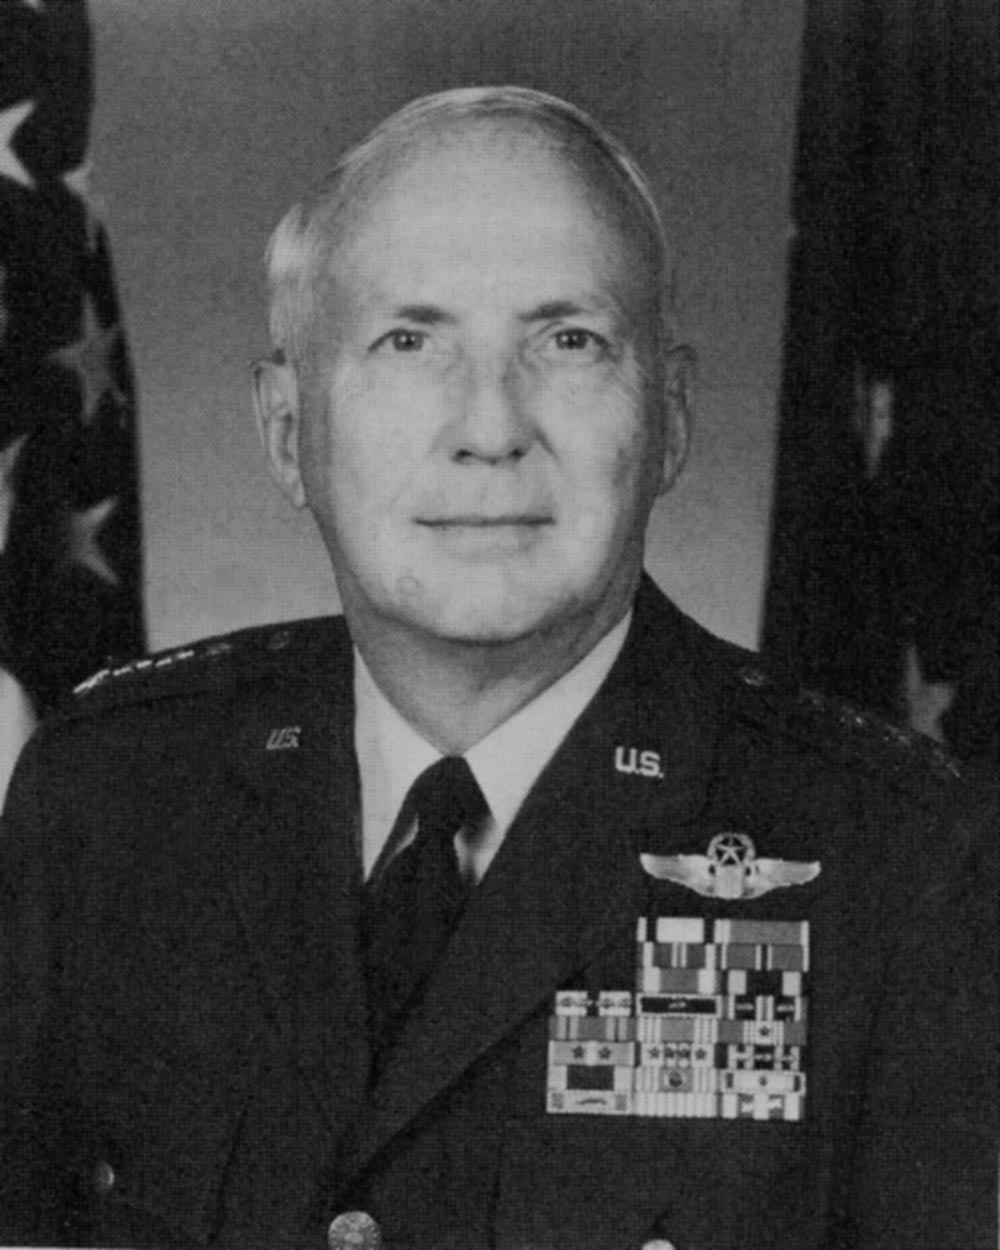 General Earl T. O'Loughlin is commander of Air Force Logistics Command, with headquarters at Wright-Patterson Air Force Base, Ohio. - 100506-F-JZ026-214